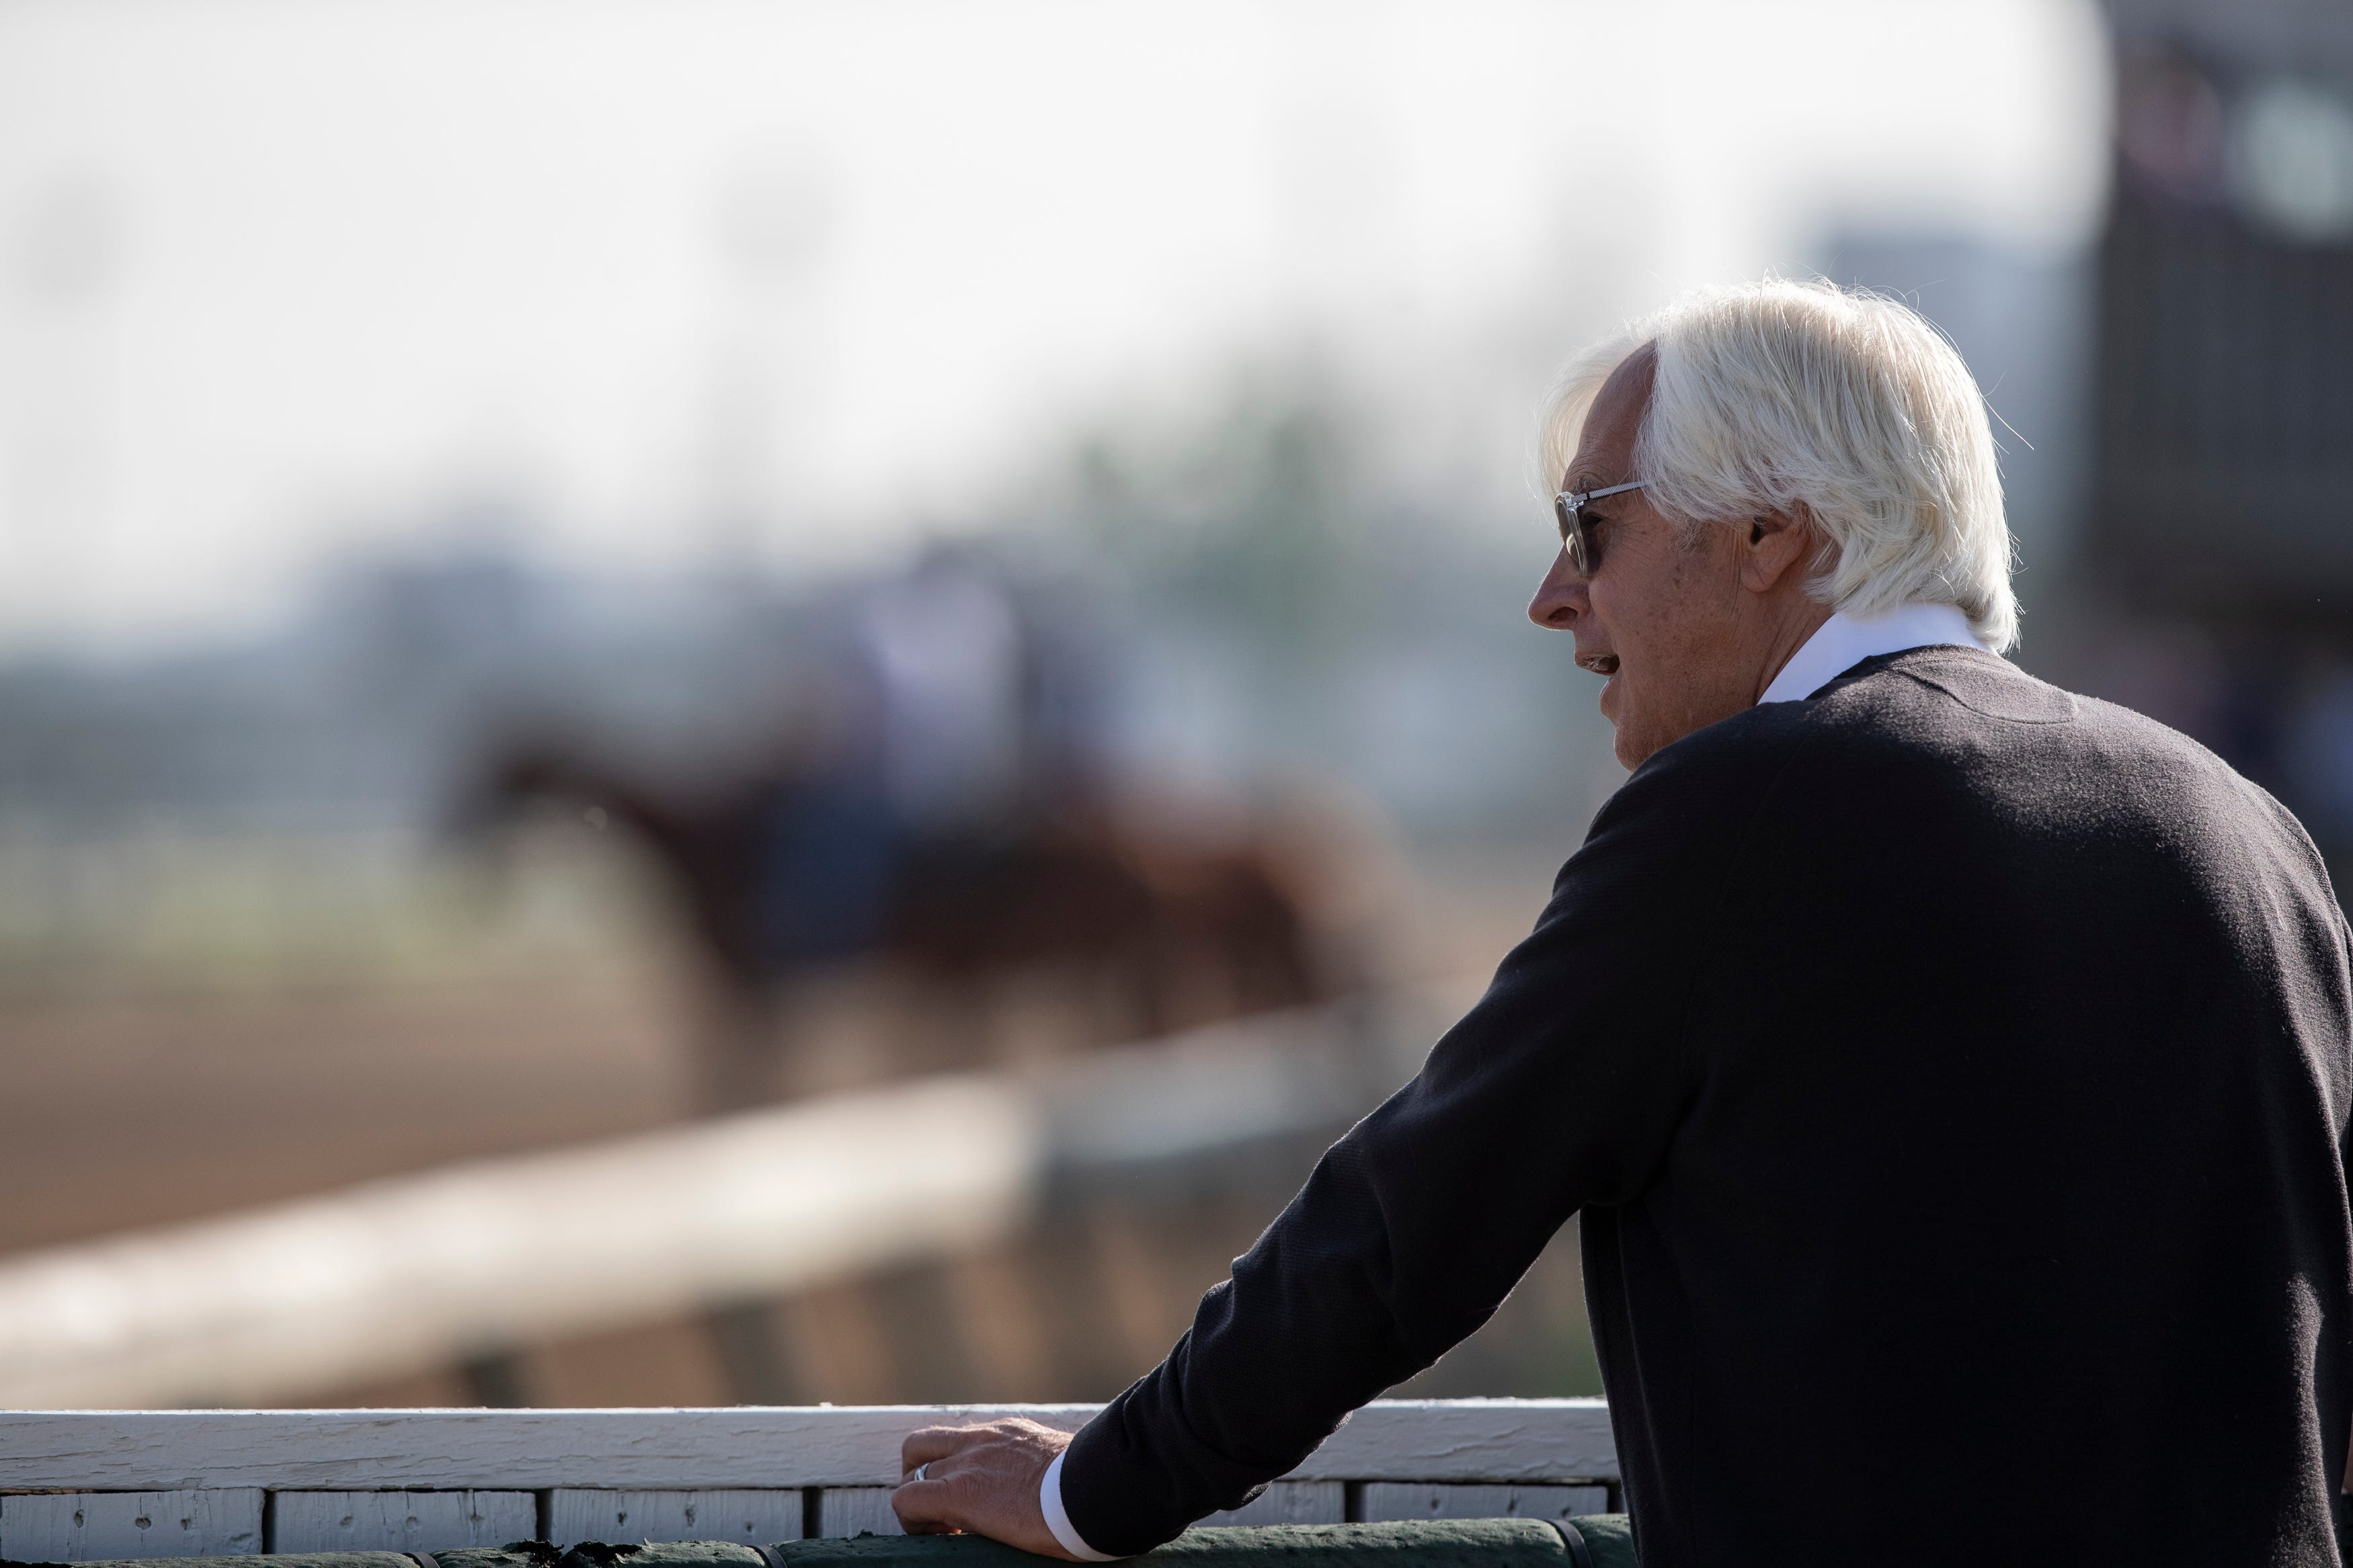 Amid mounting medication issues, Hall of Fame trainer Bob Baffert promises tighter ship